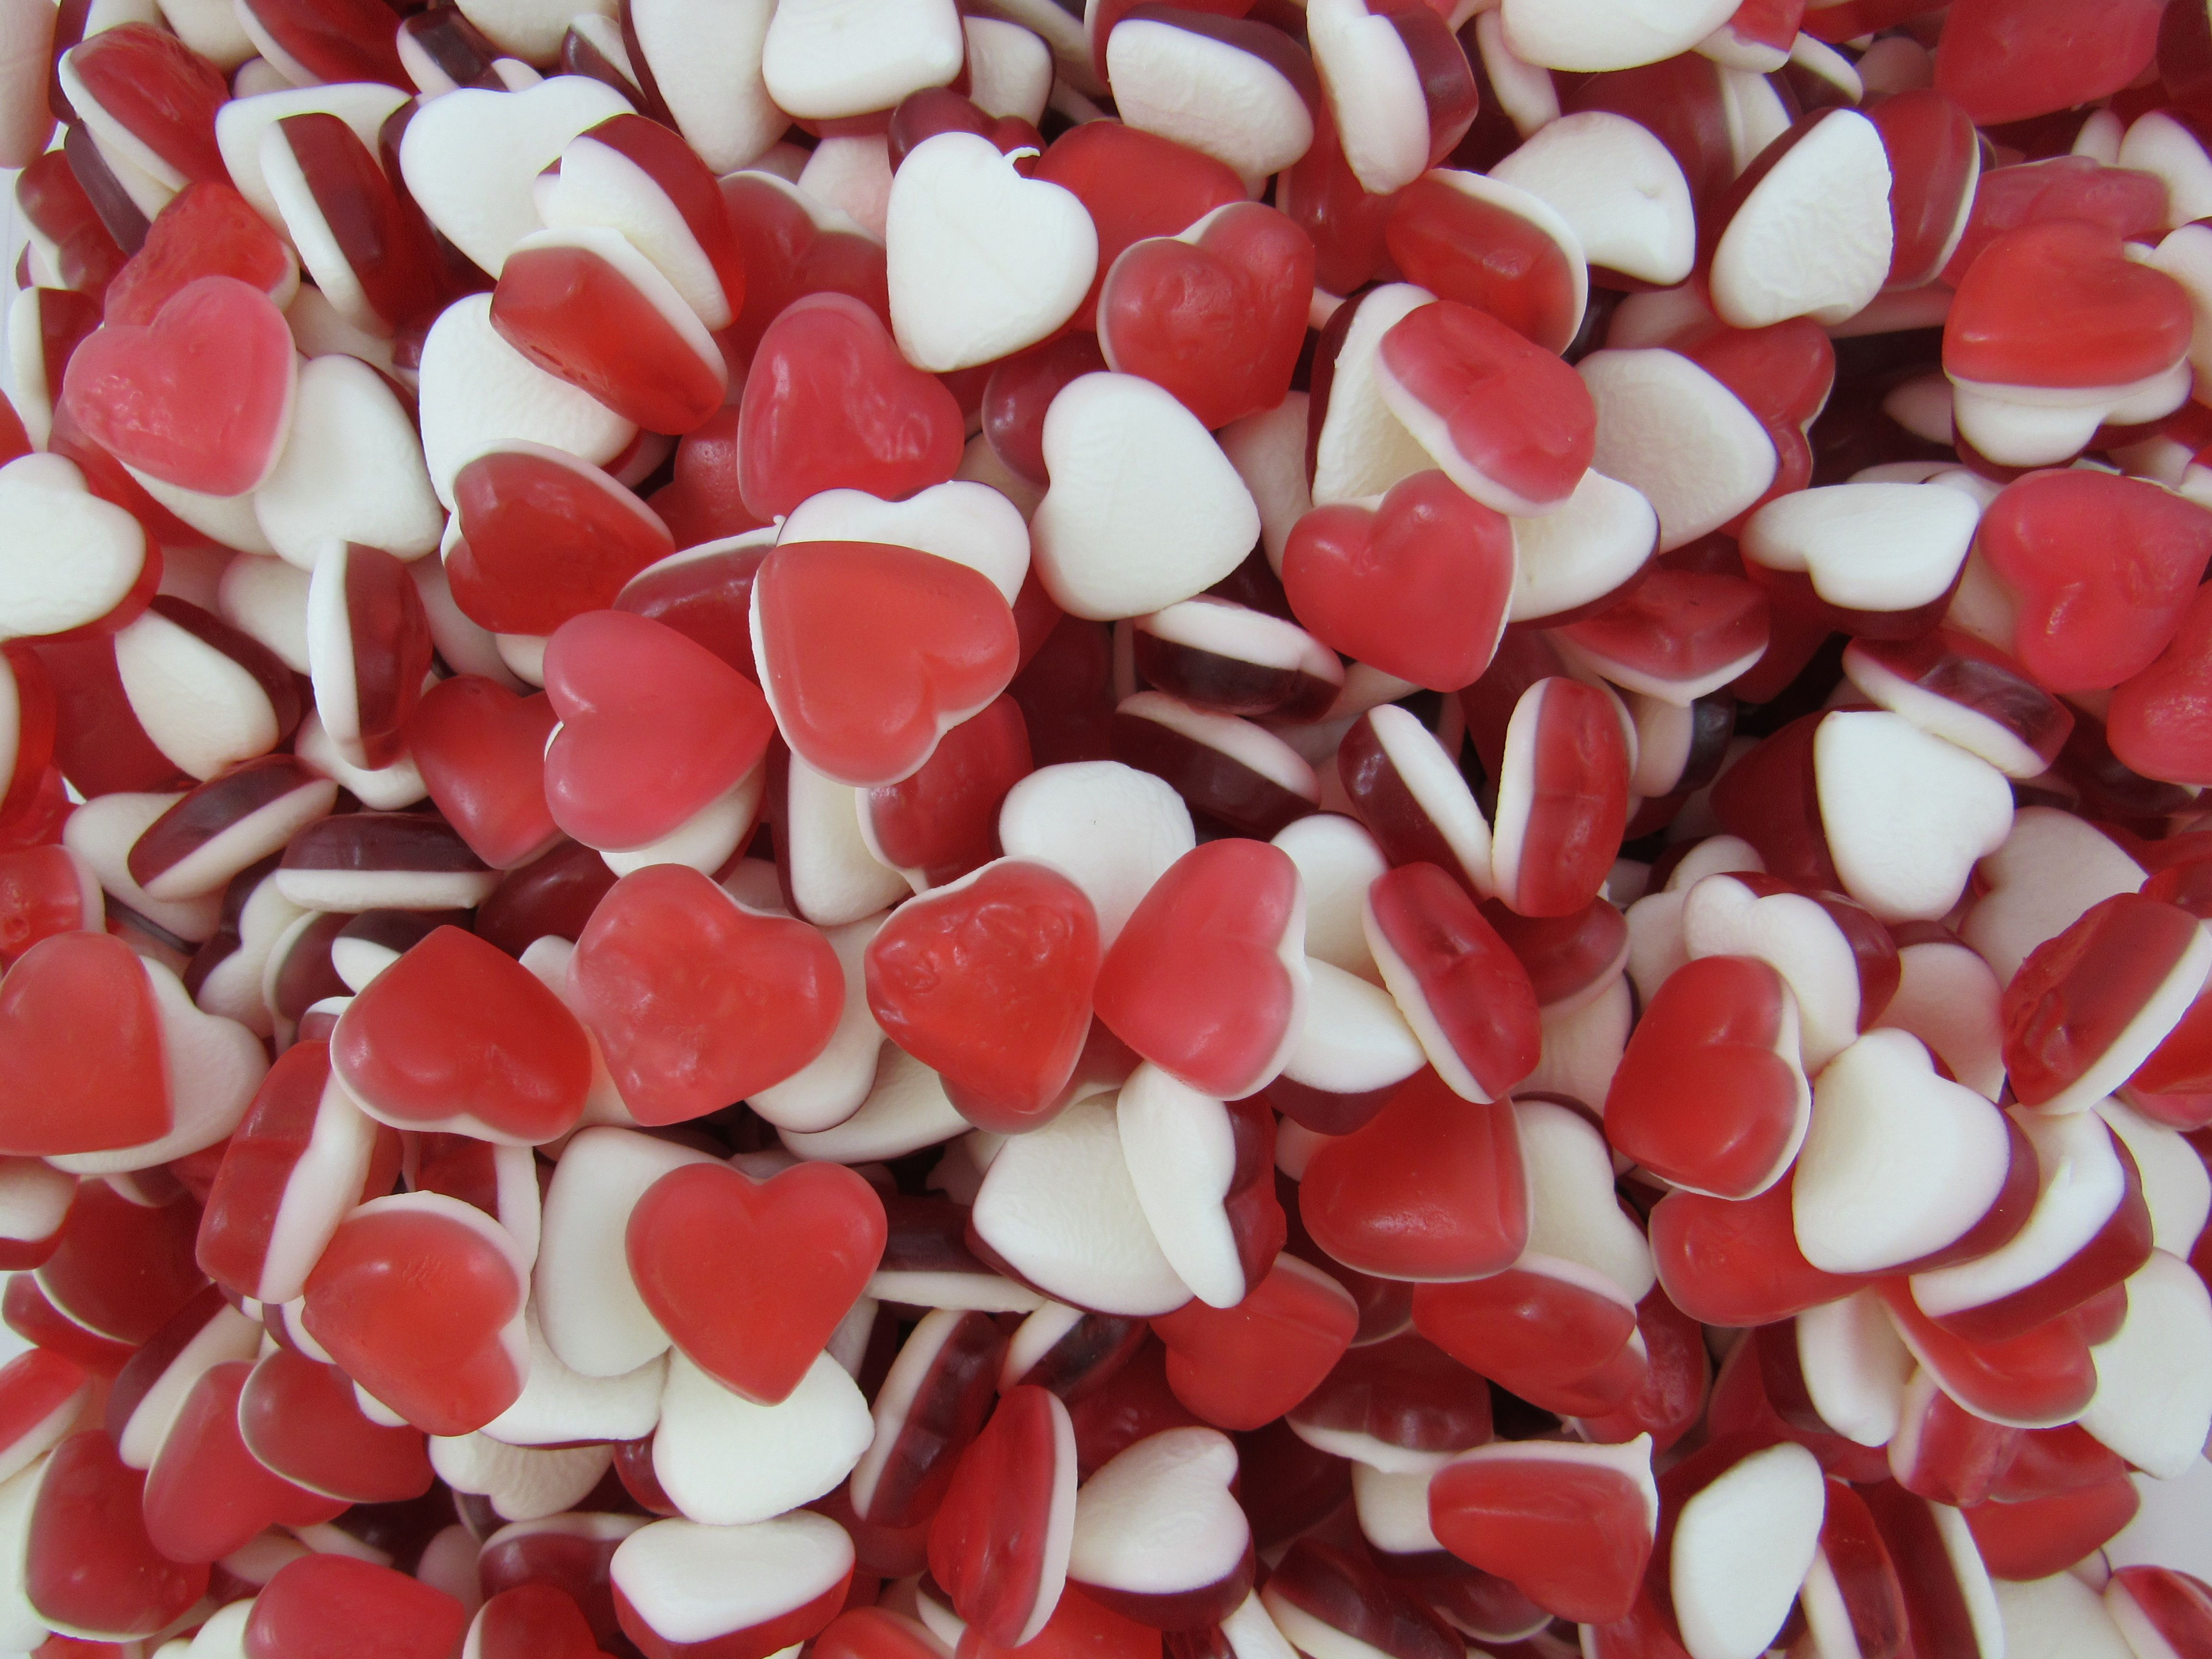 Haribo Heart Throbs Are Definitely The Most Romantic Jelly Sweets Around And Of Course They Taste Delicious Too Th Retro Sweets Retro Sweet Shop Jelly Sweets